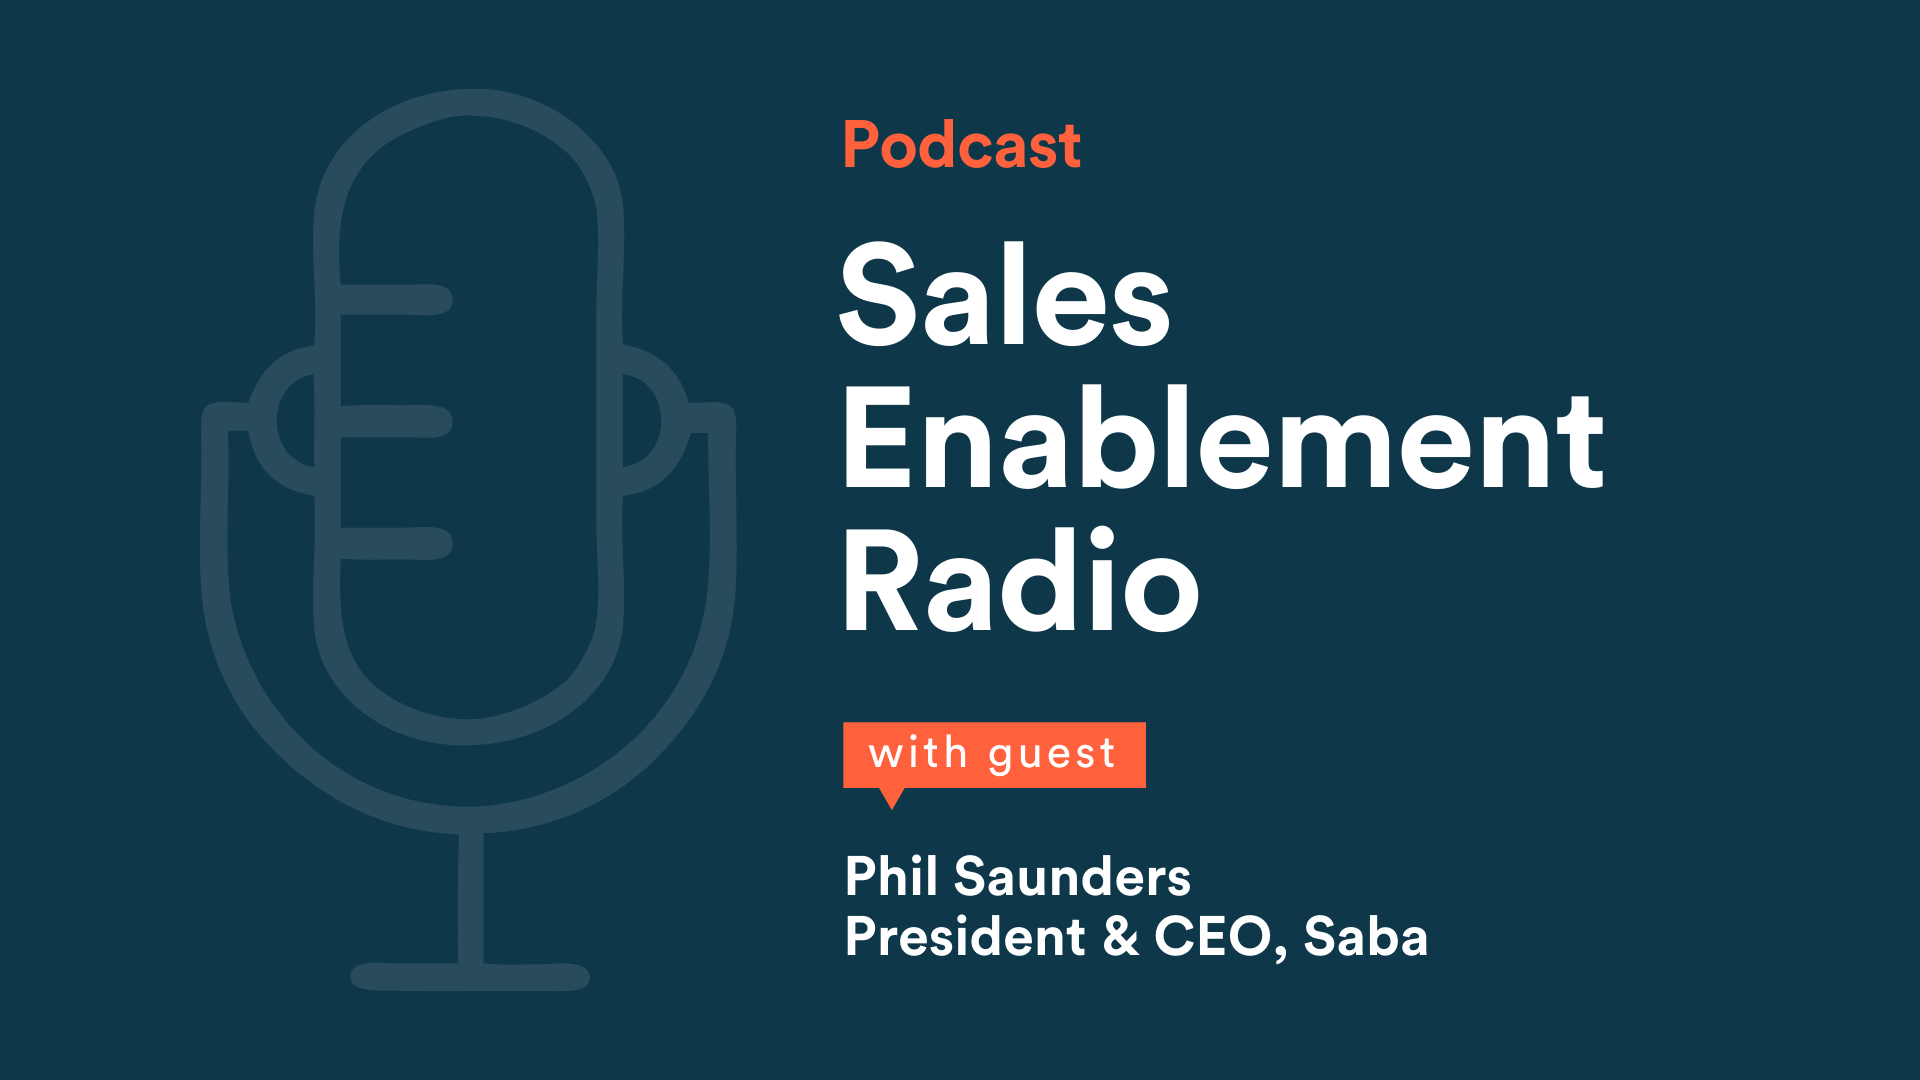 Post Merger Confessions of a $200M Company CEO | With Guest, Phil Saunders